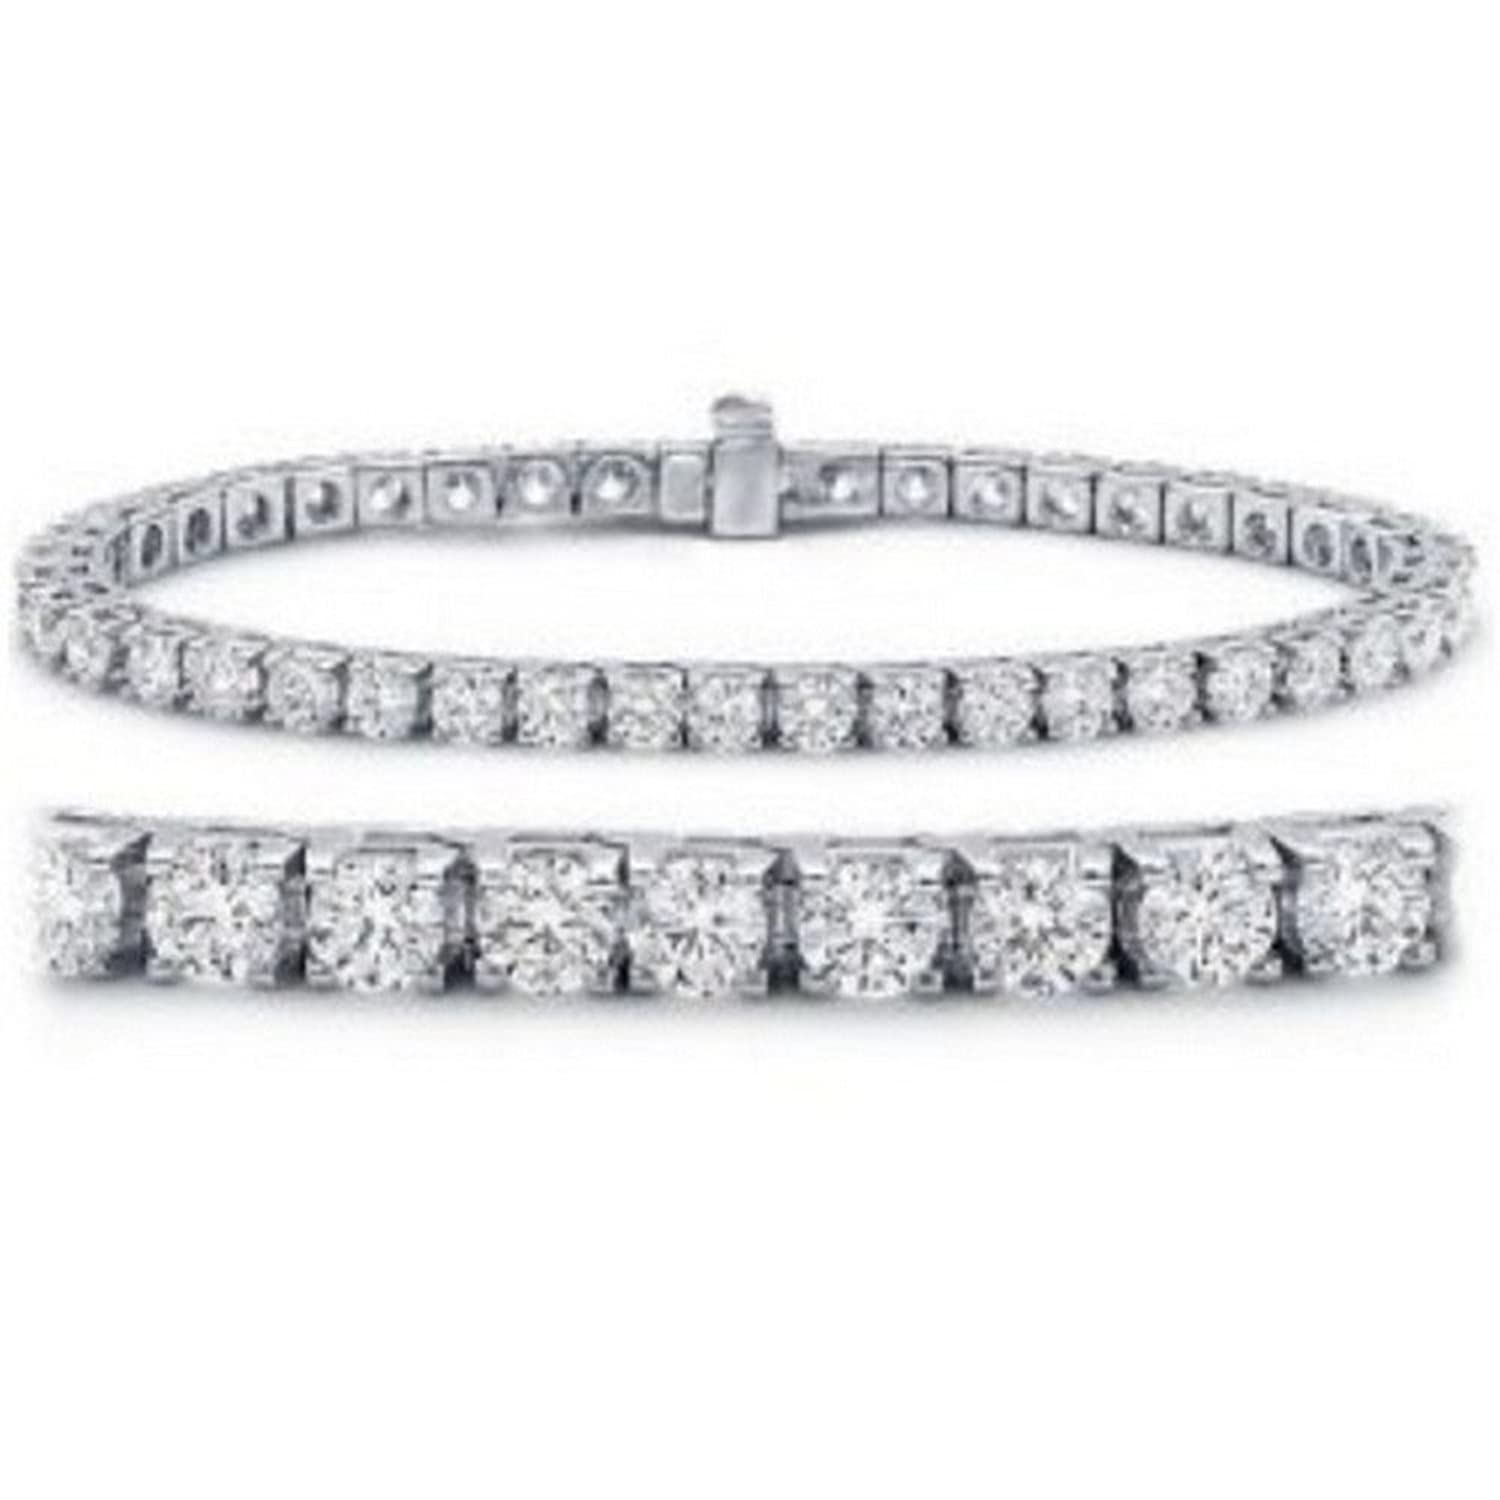 tennis envie bracelet products york new